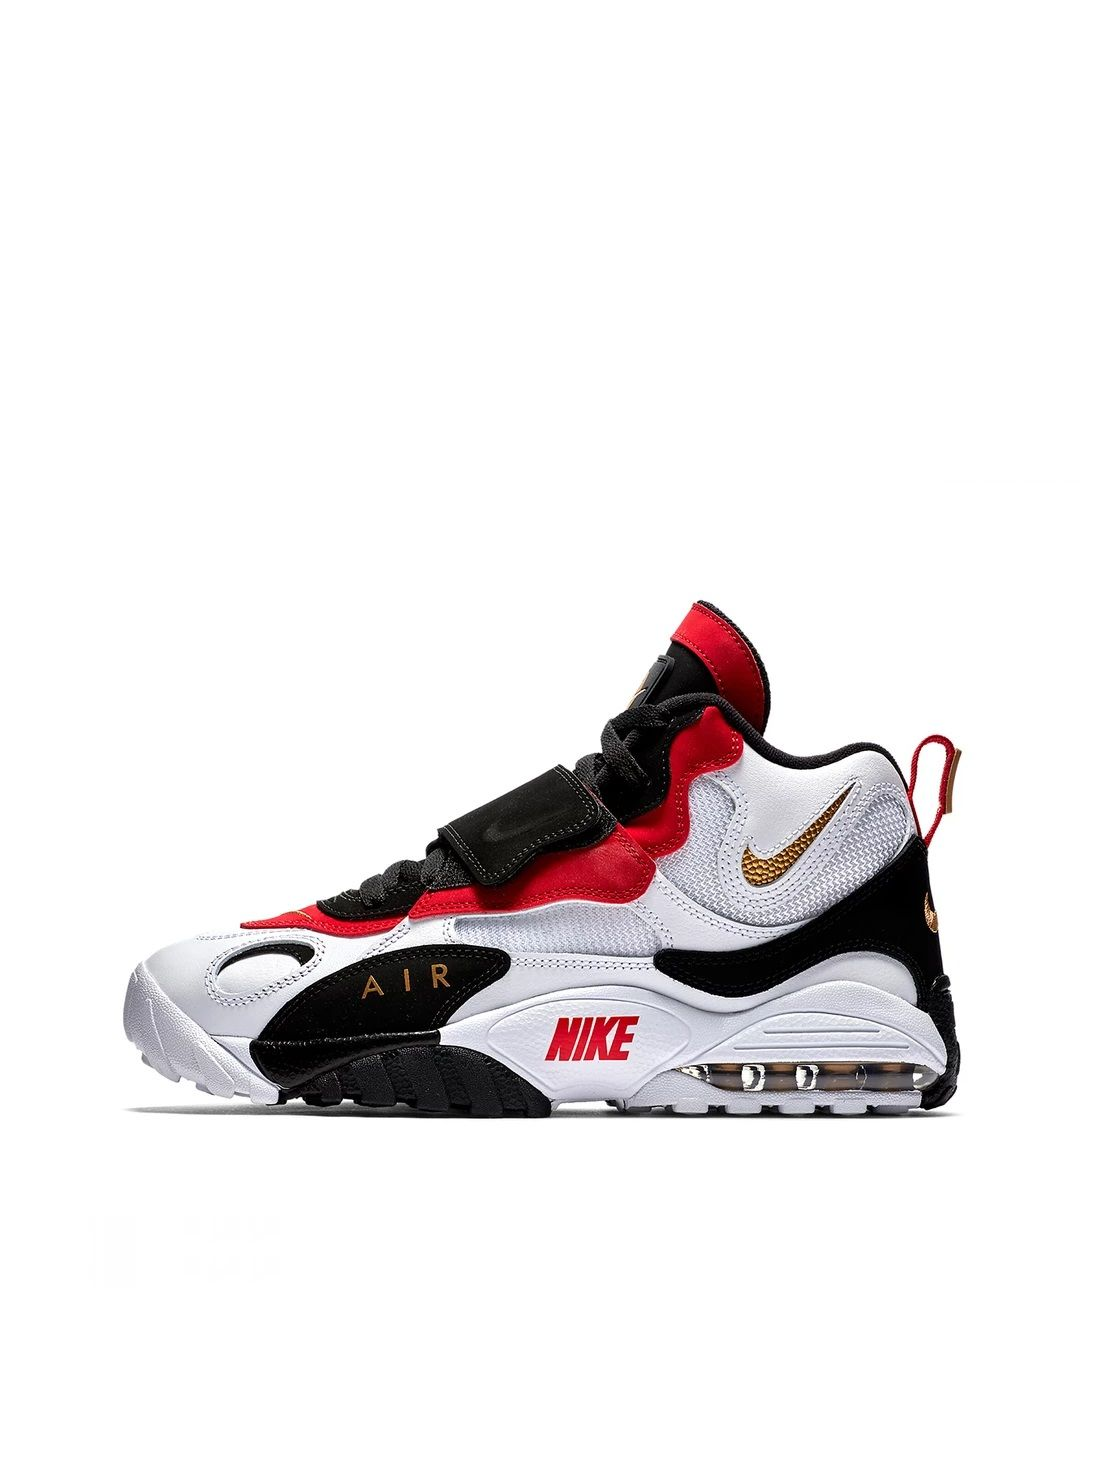 premium selection 1c826 f3815 Nike Air Speed Turf Max